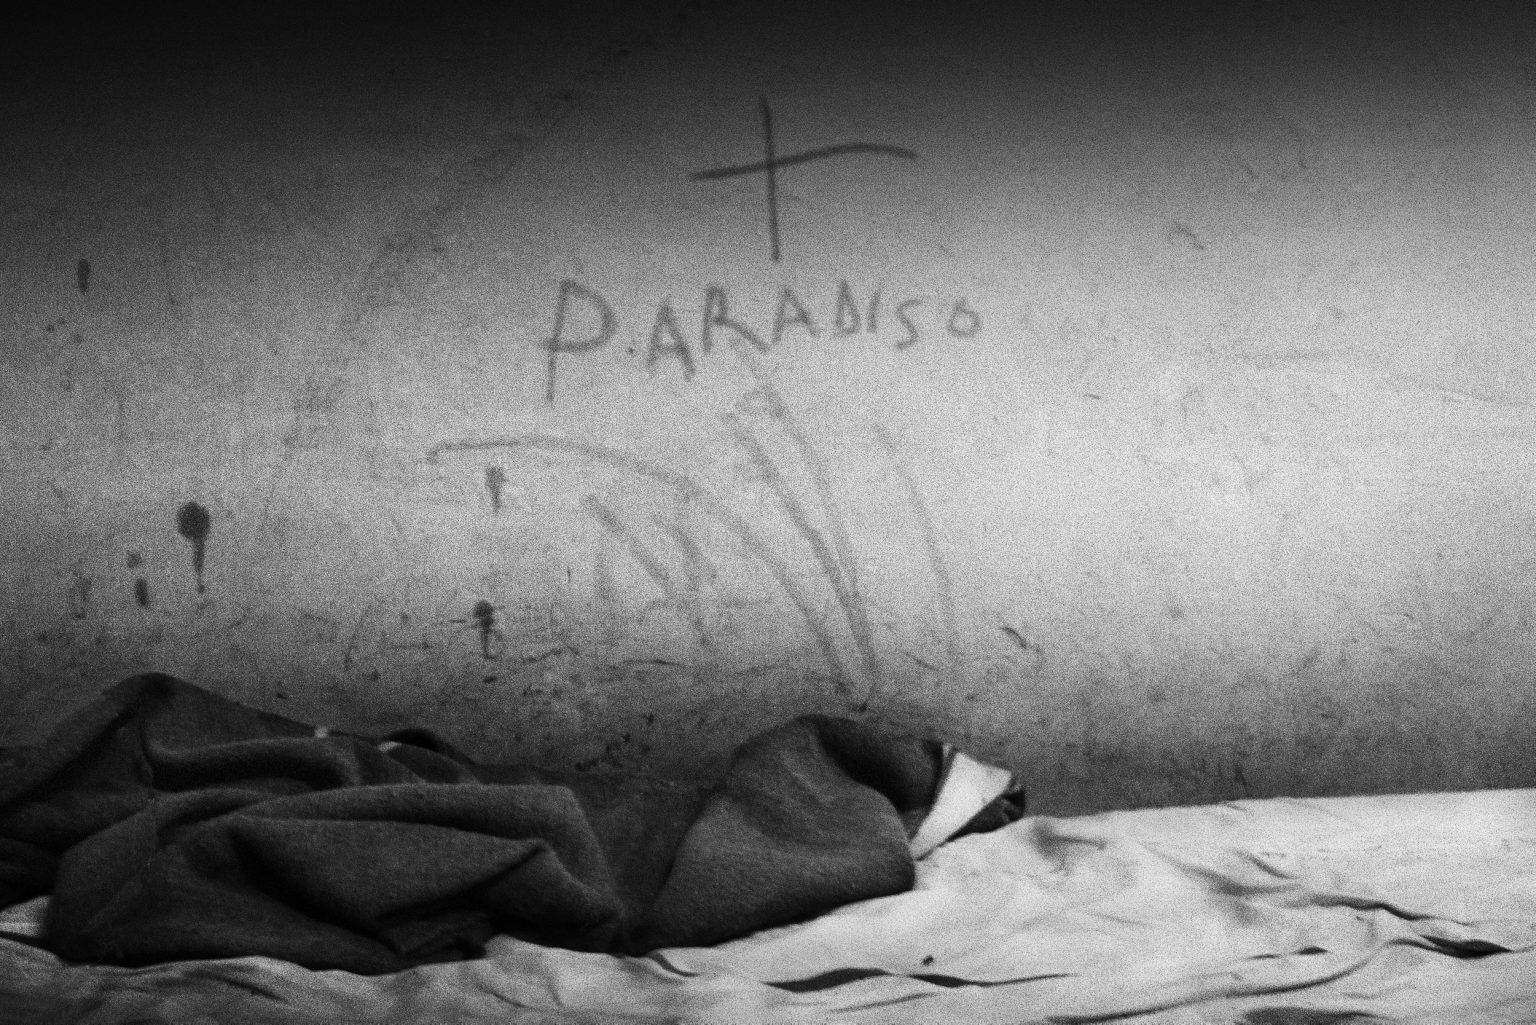 Writing on the walls of a cell. Judicial Psychiatric Hospital. Aversa, Caserta, Italy, 2007